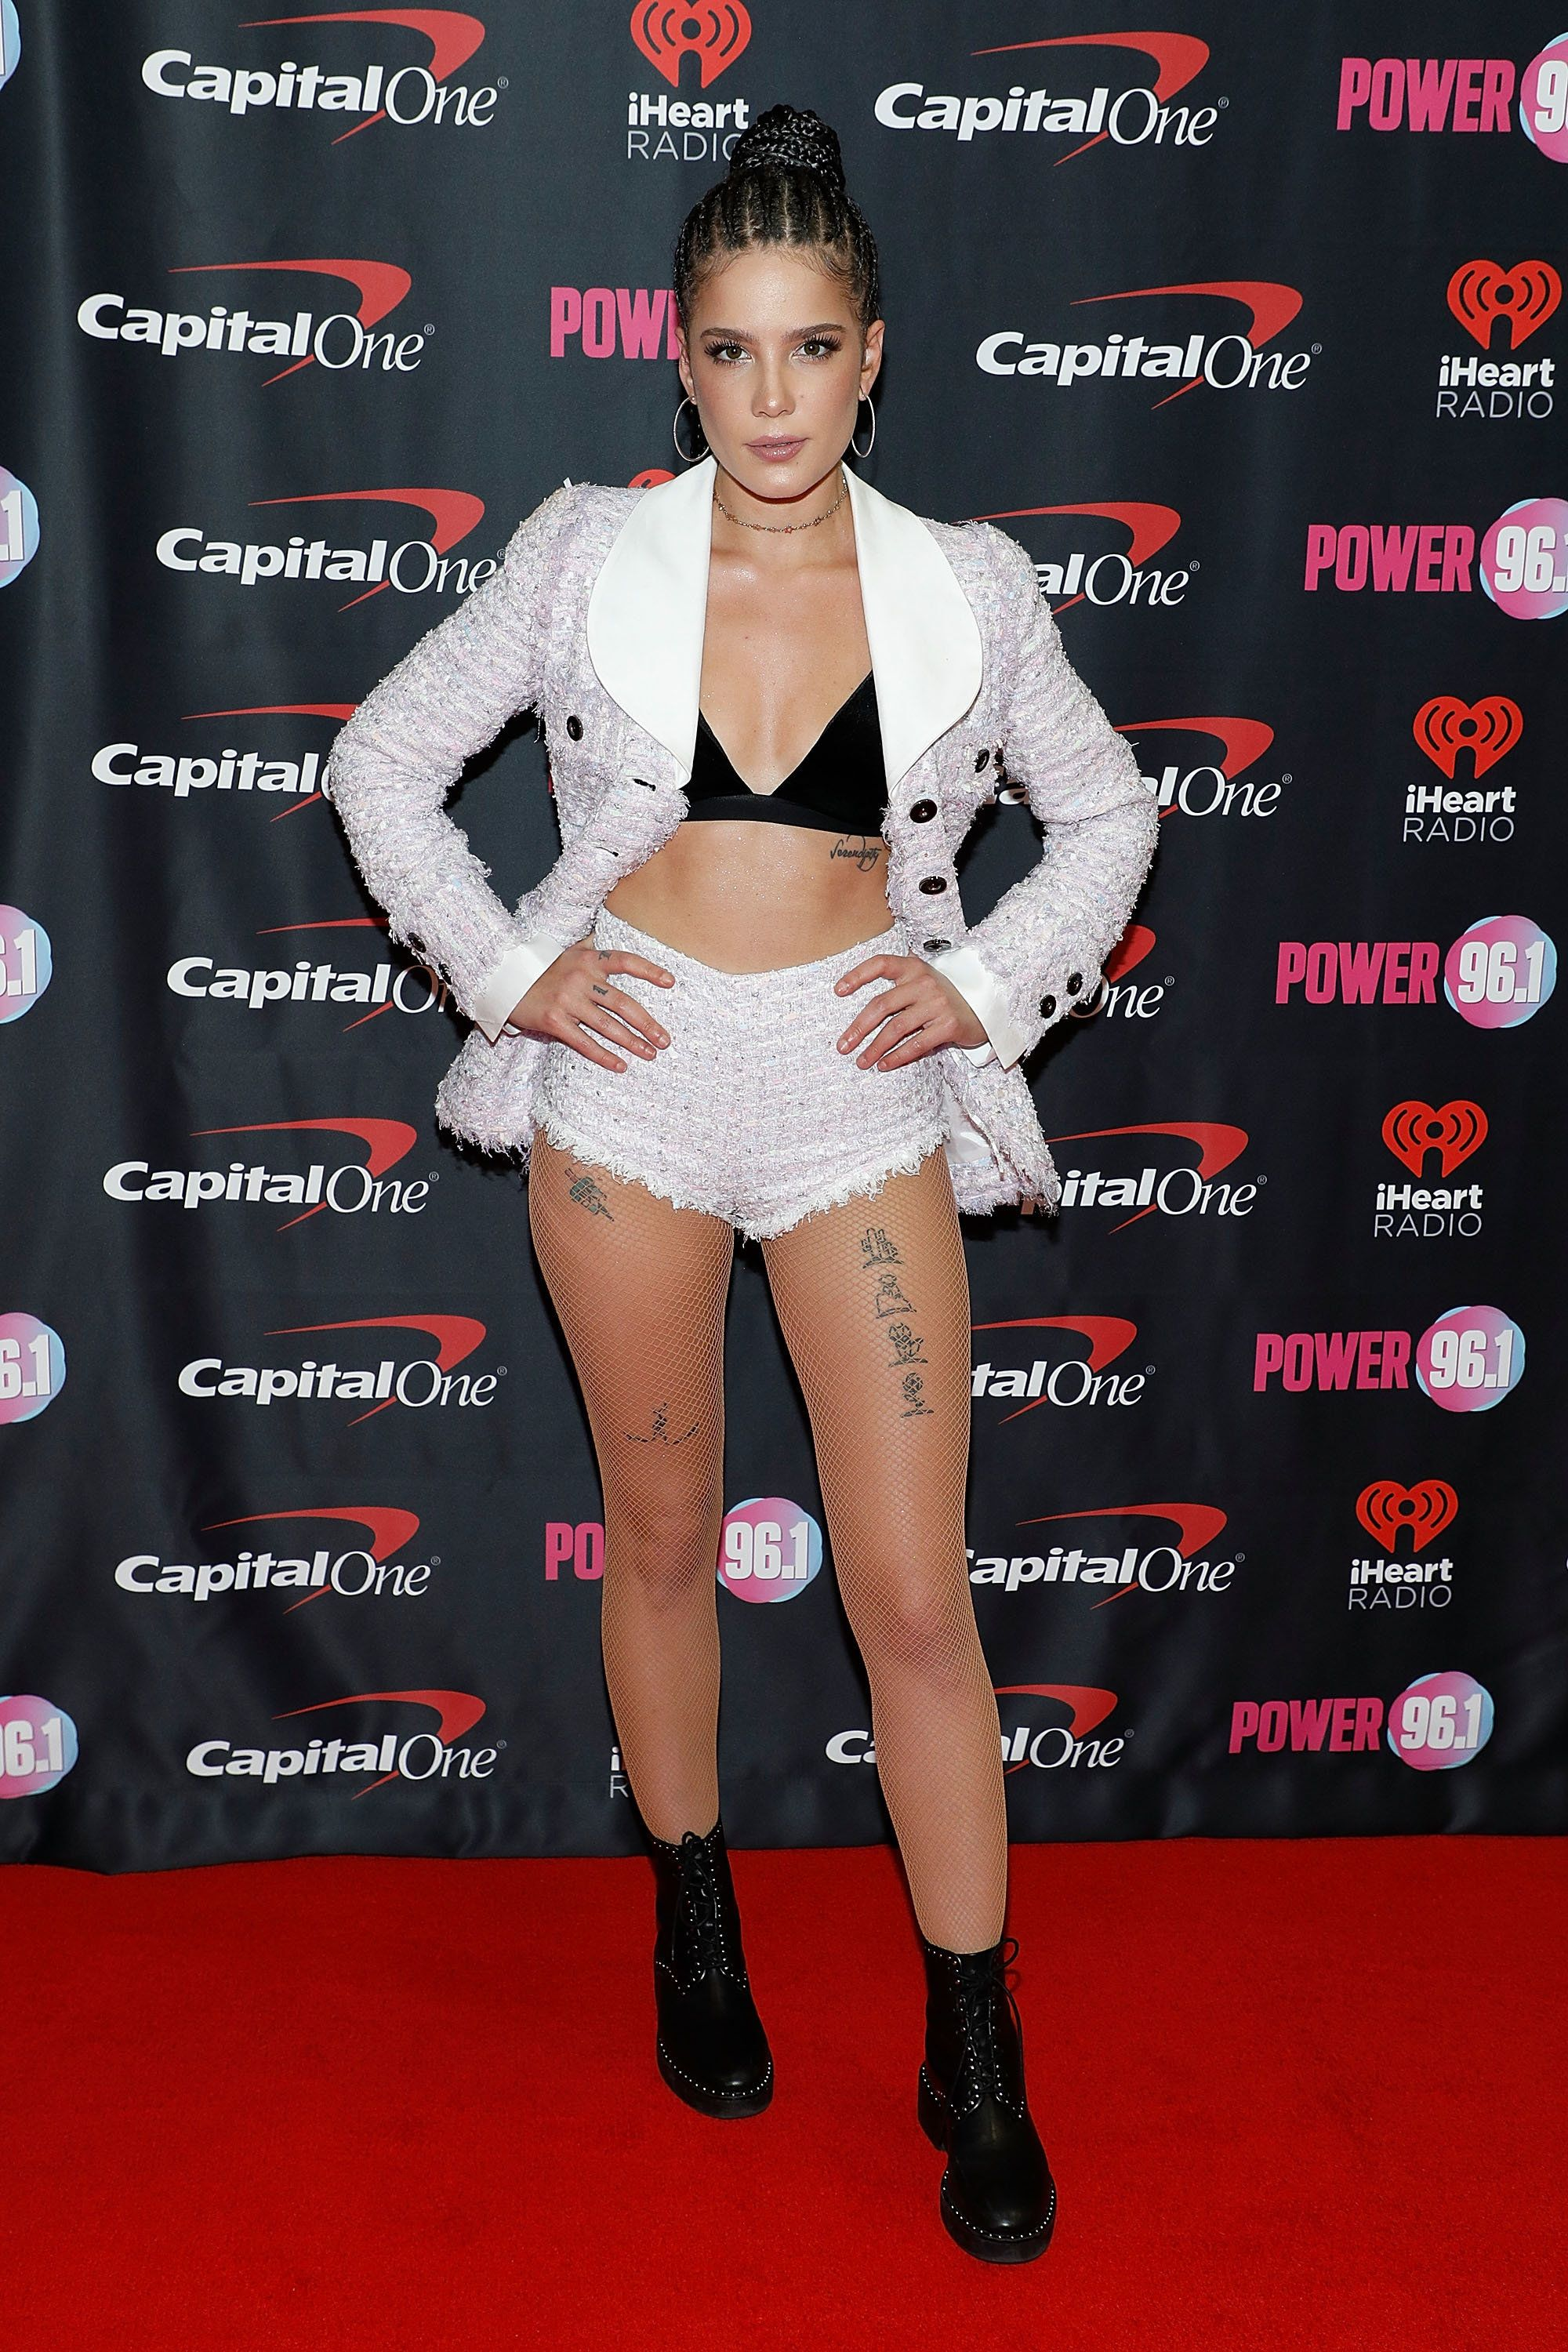 At the Power 96.1 iHeartRadio Jingle Ball on Dec. 15 in Atlanta.